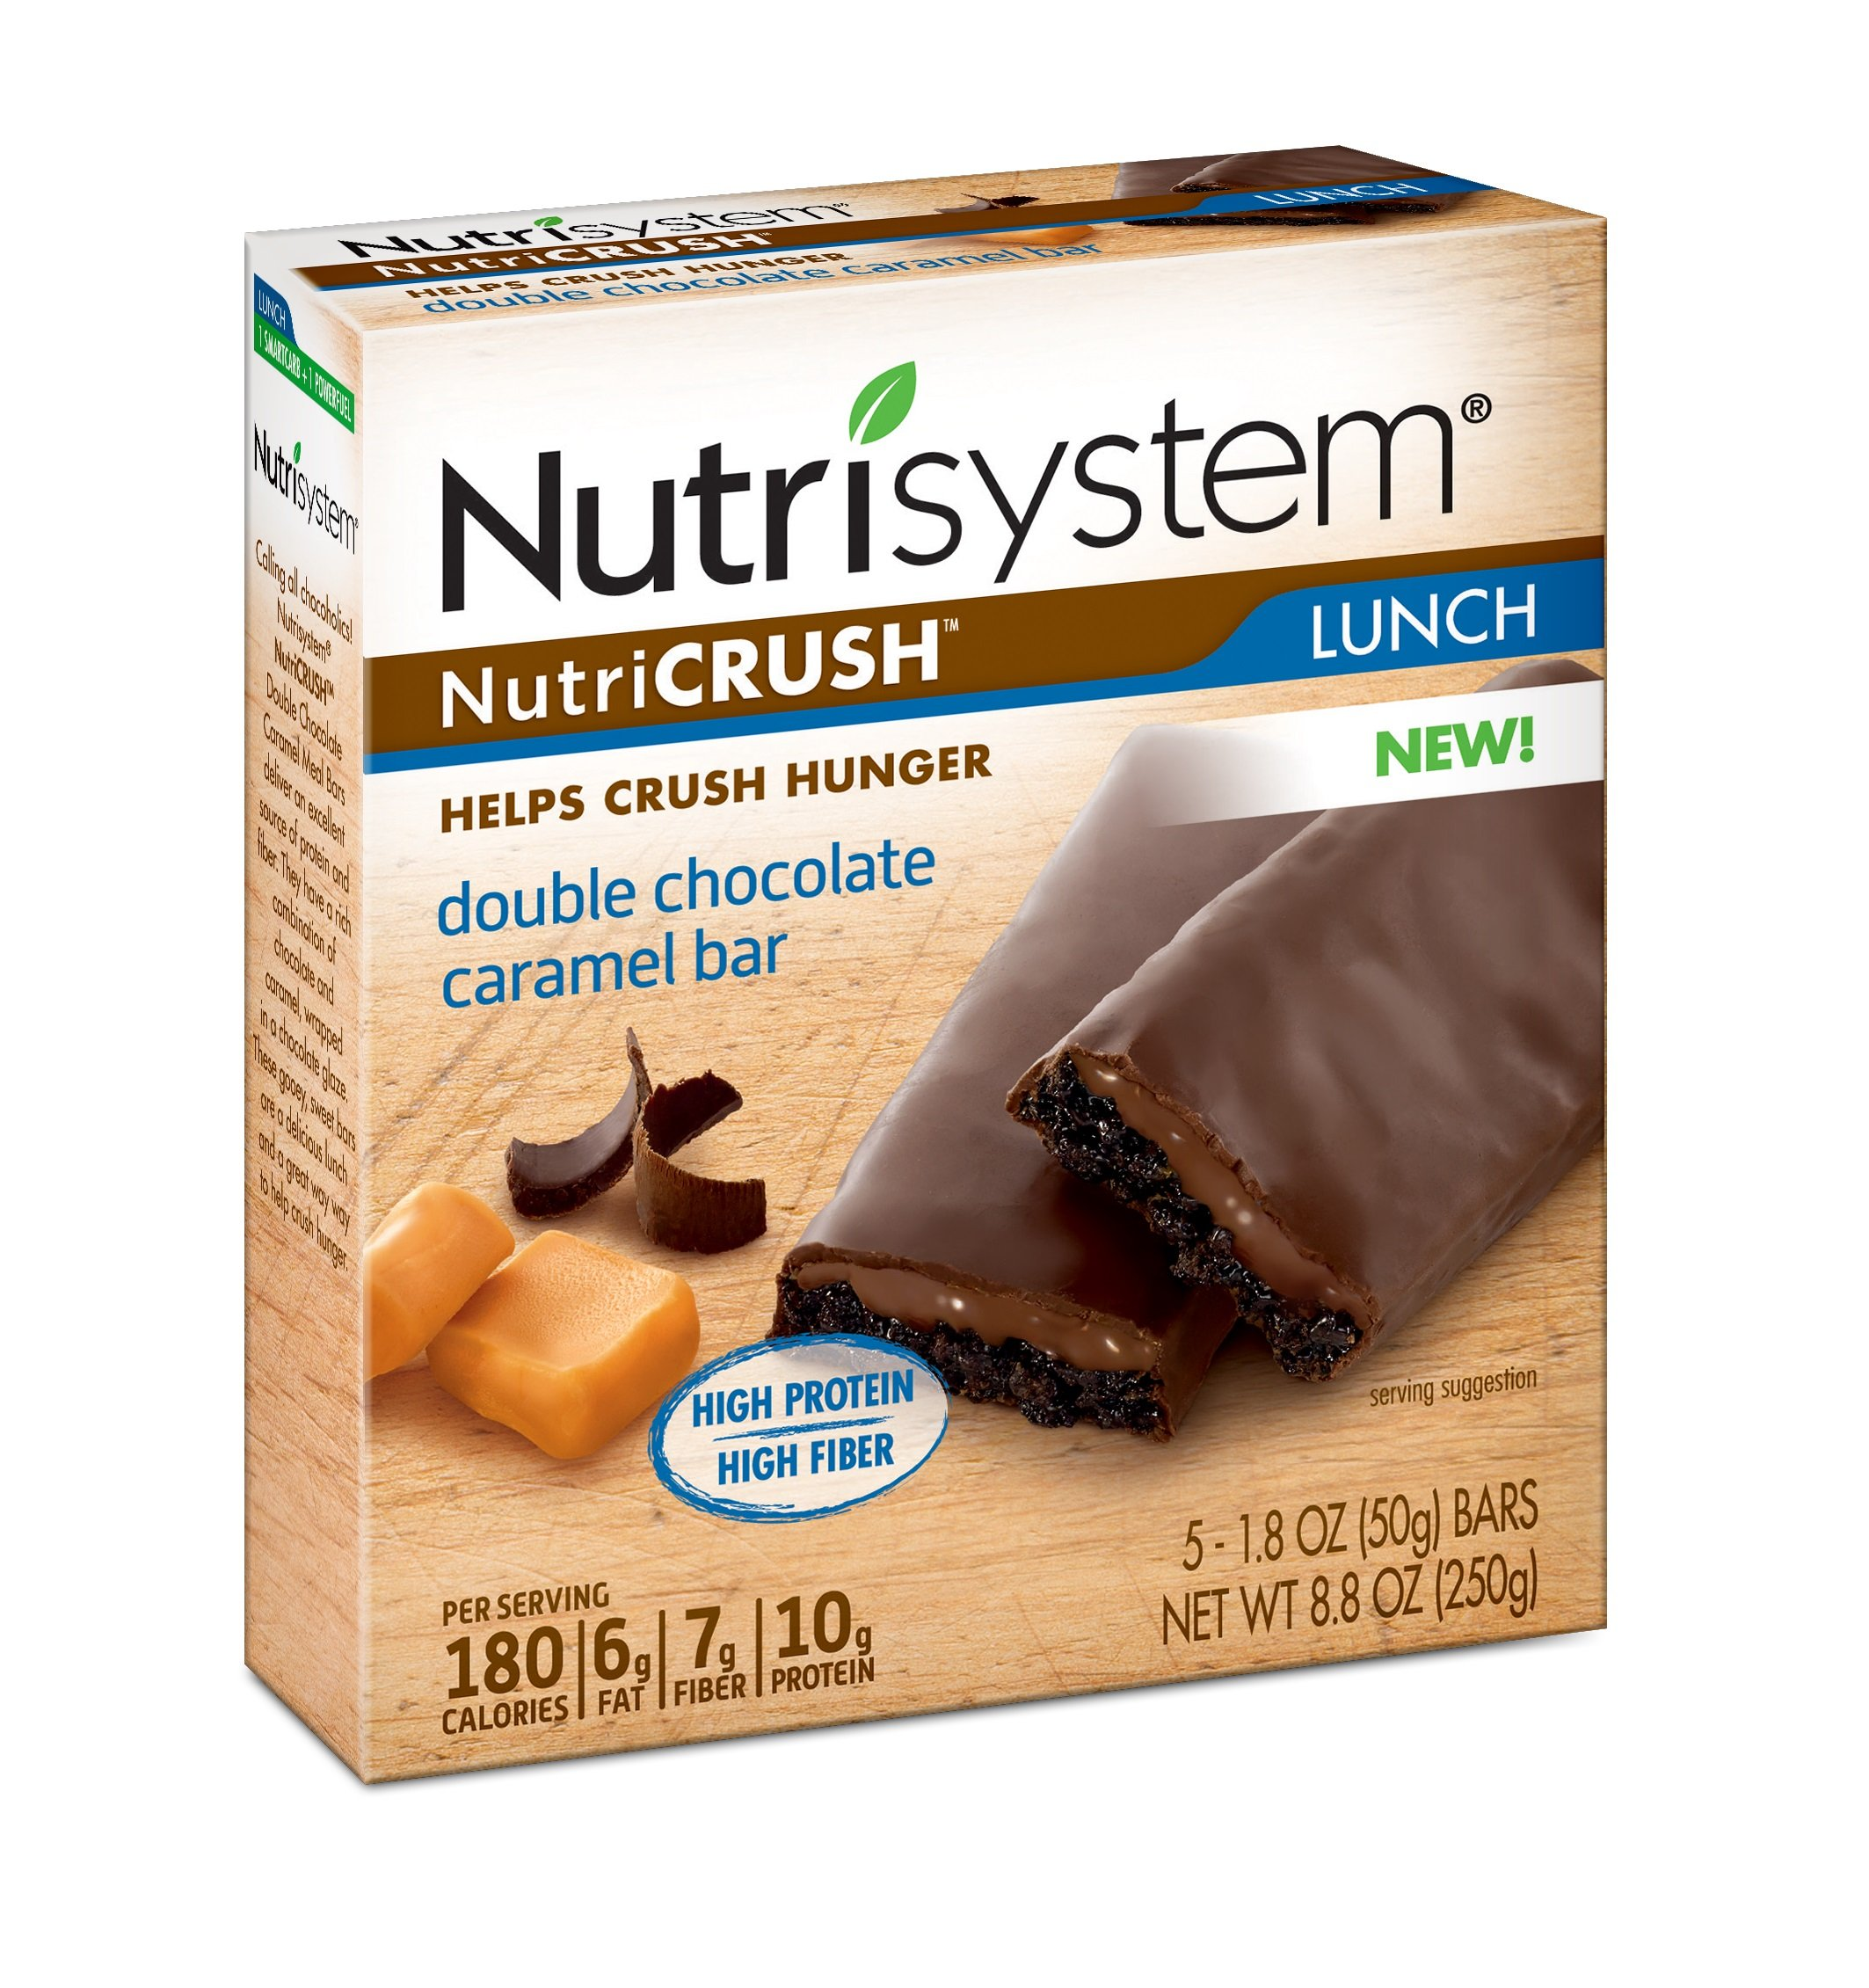 Nutrisystem® NutriCRUSH® Double Chocolate Caramel Bars, 30 ct.